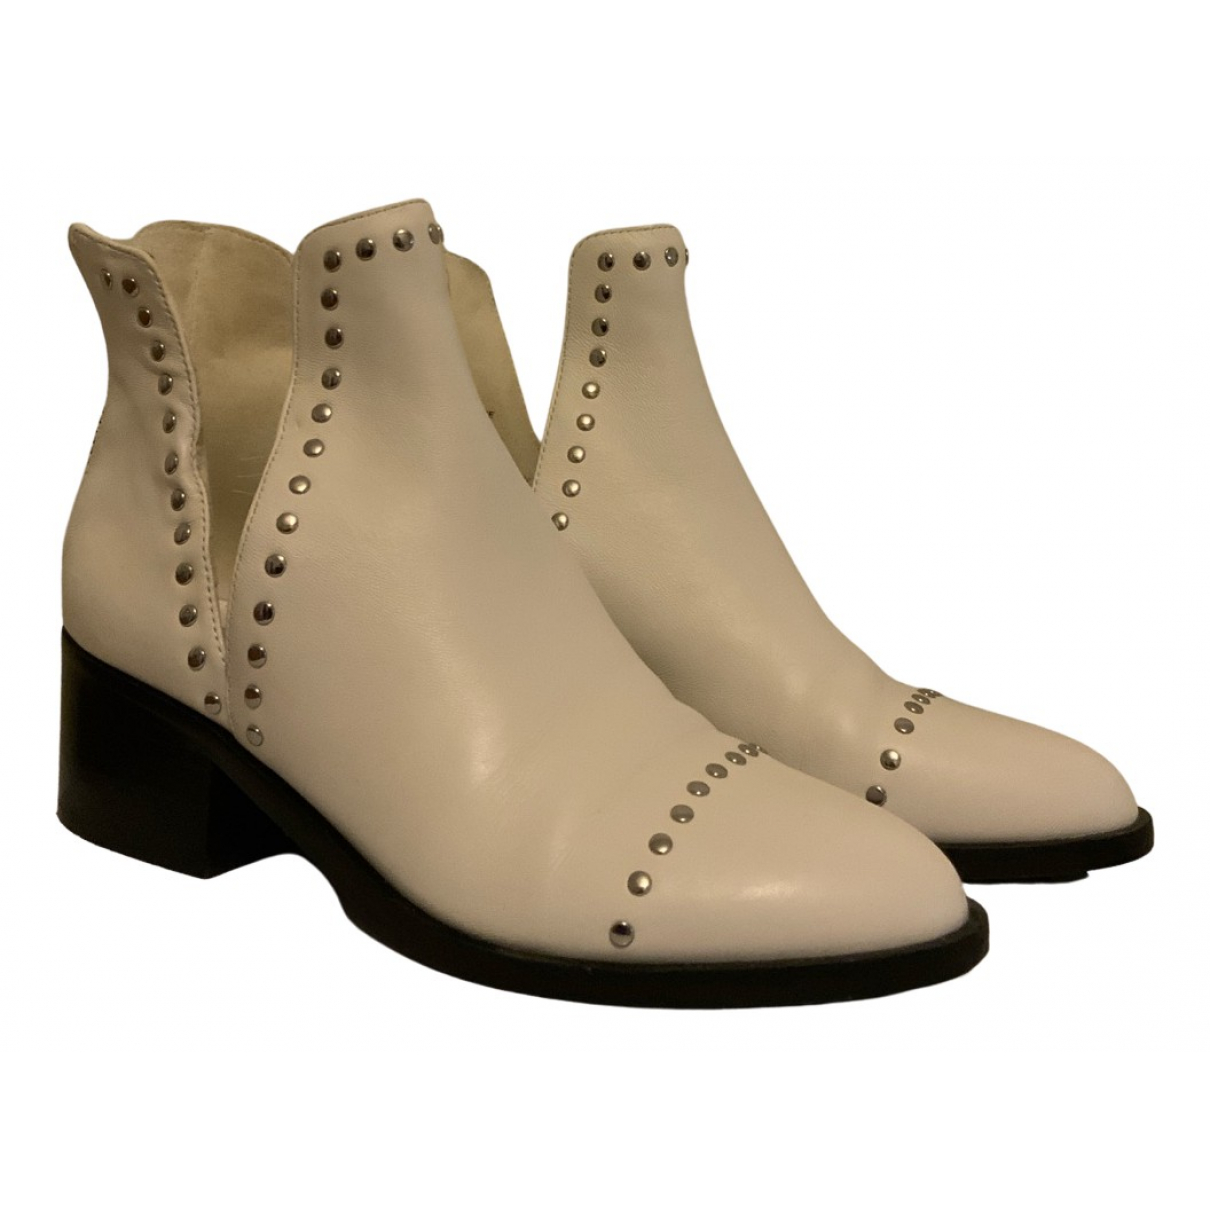 Steve Madden N White Leather Ankle boots for Women 36 IT